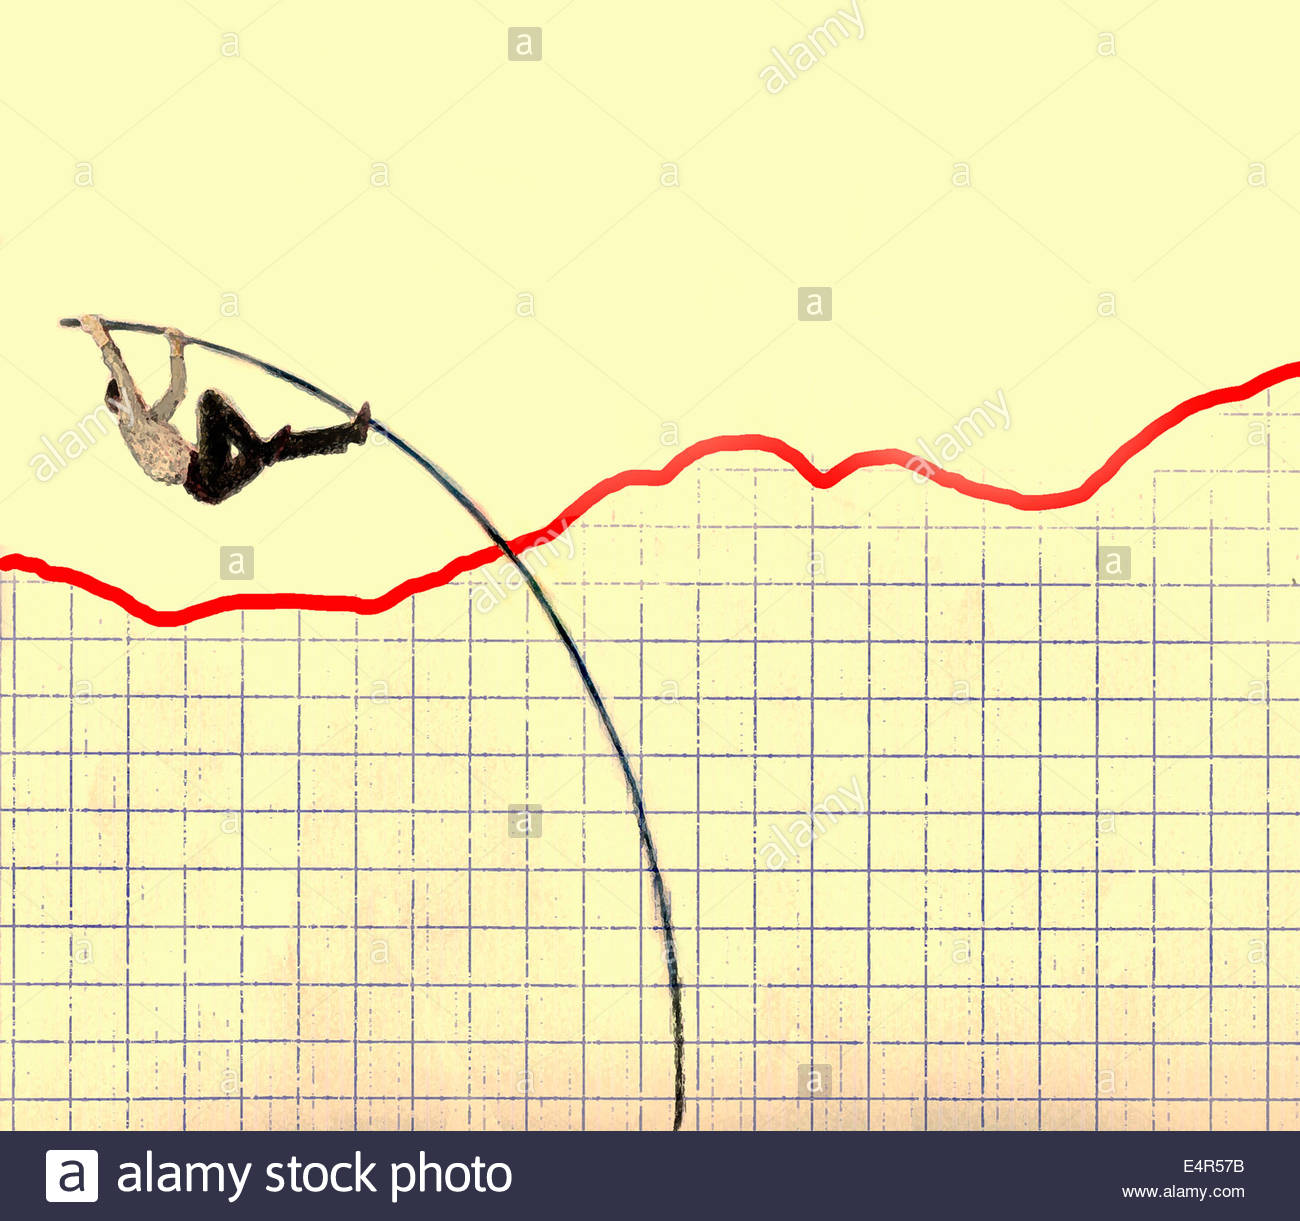 Businessman pole vaulting over red line graph - Stock Image